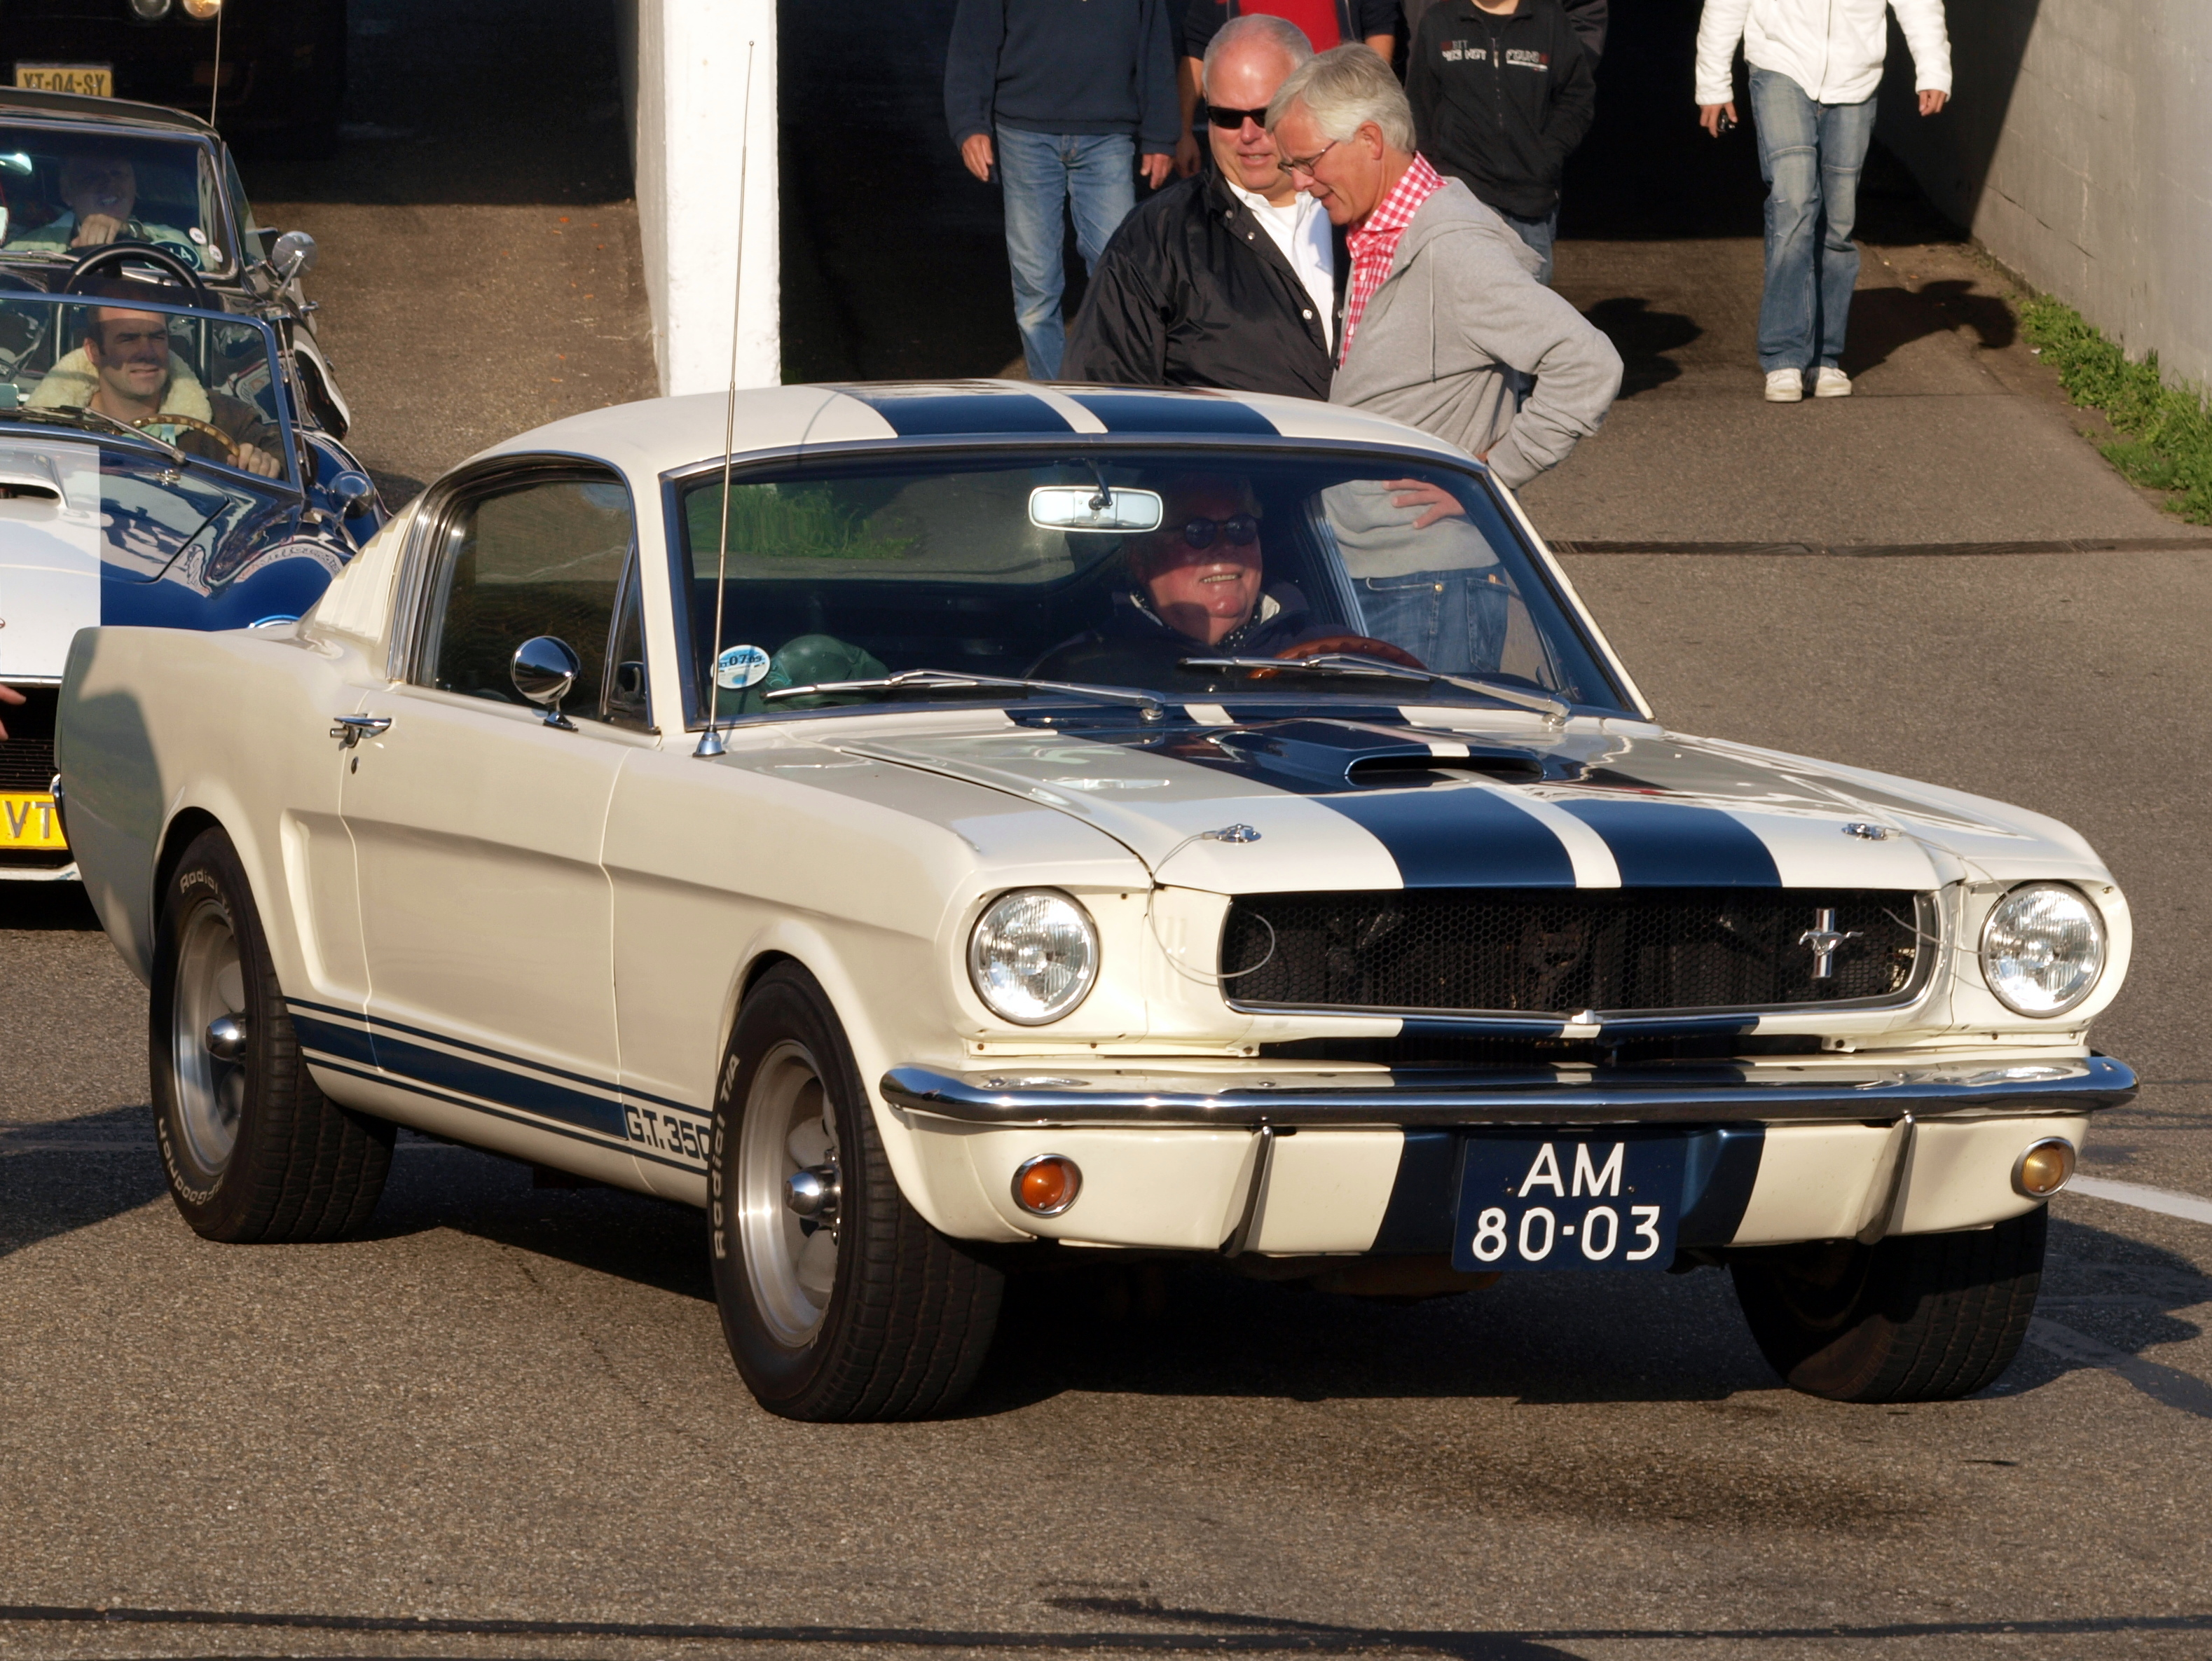 Mustang Gt 500 >> File:Ford Mustang dutch licence registration AM-80-03 pic5.JPG - Wikimedia Commons